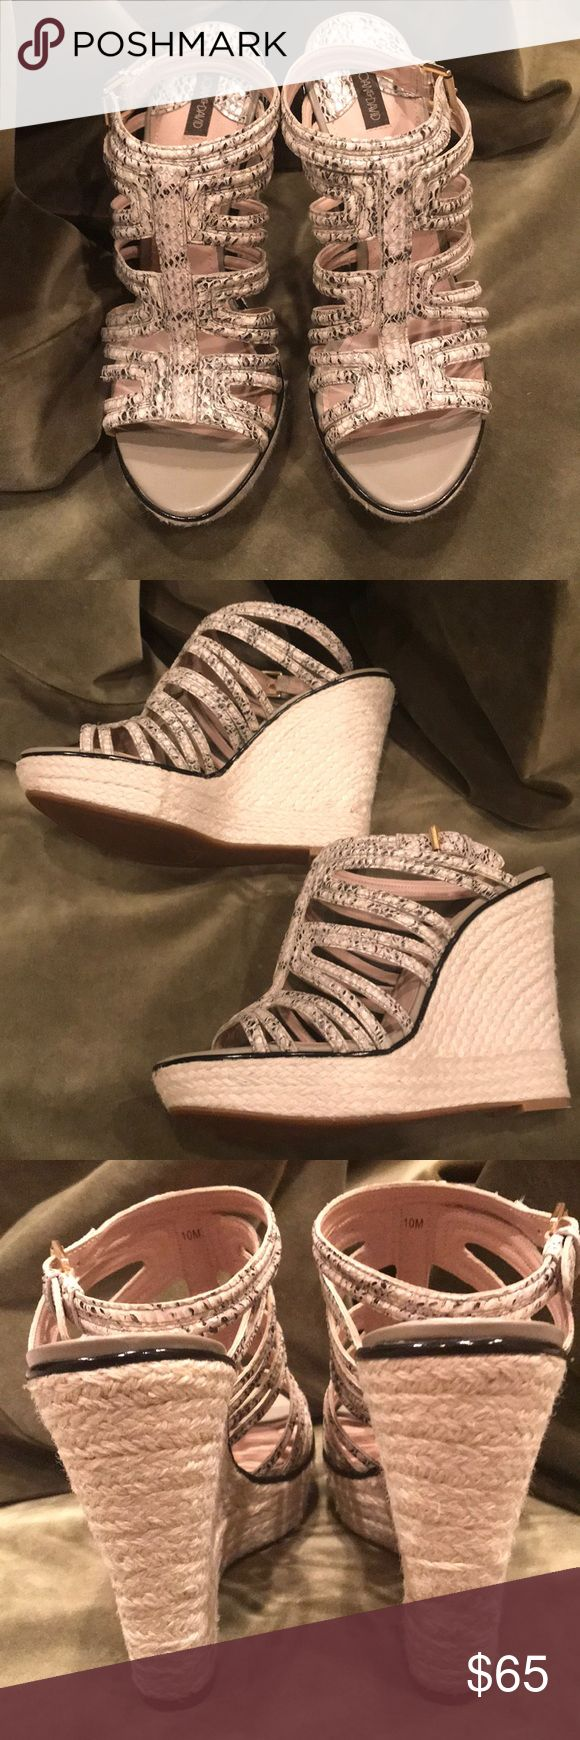 "Snakeskin Joan & David wedges. Size 10M. Beautiful Ivory and Black colored snakeskin wedges. 5""heel. Wore 1 time! Immaculate condition. Fit true to size. Joan & David Shoes Wedges"